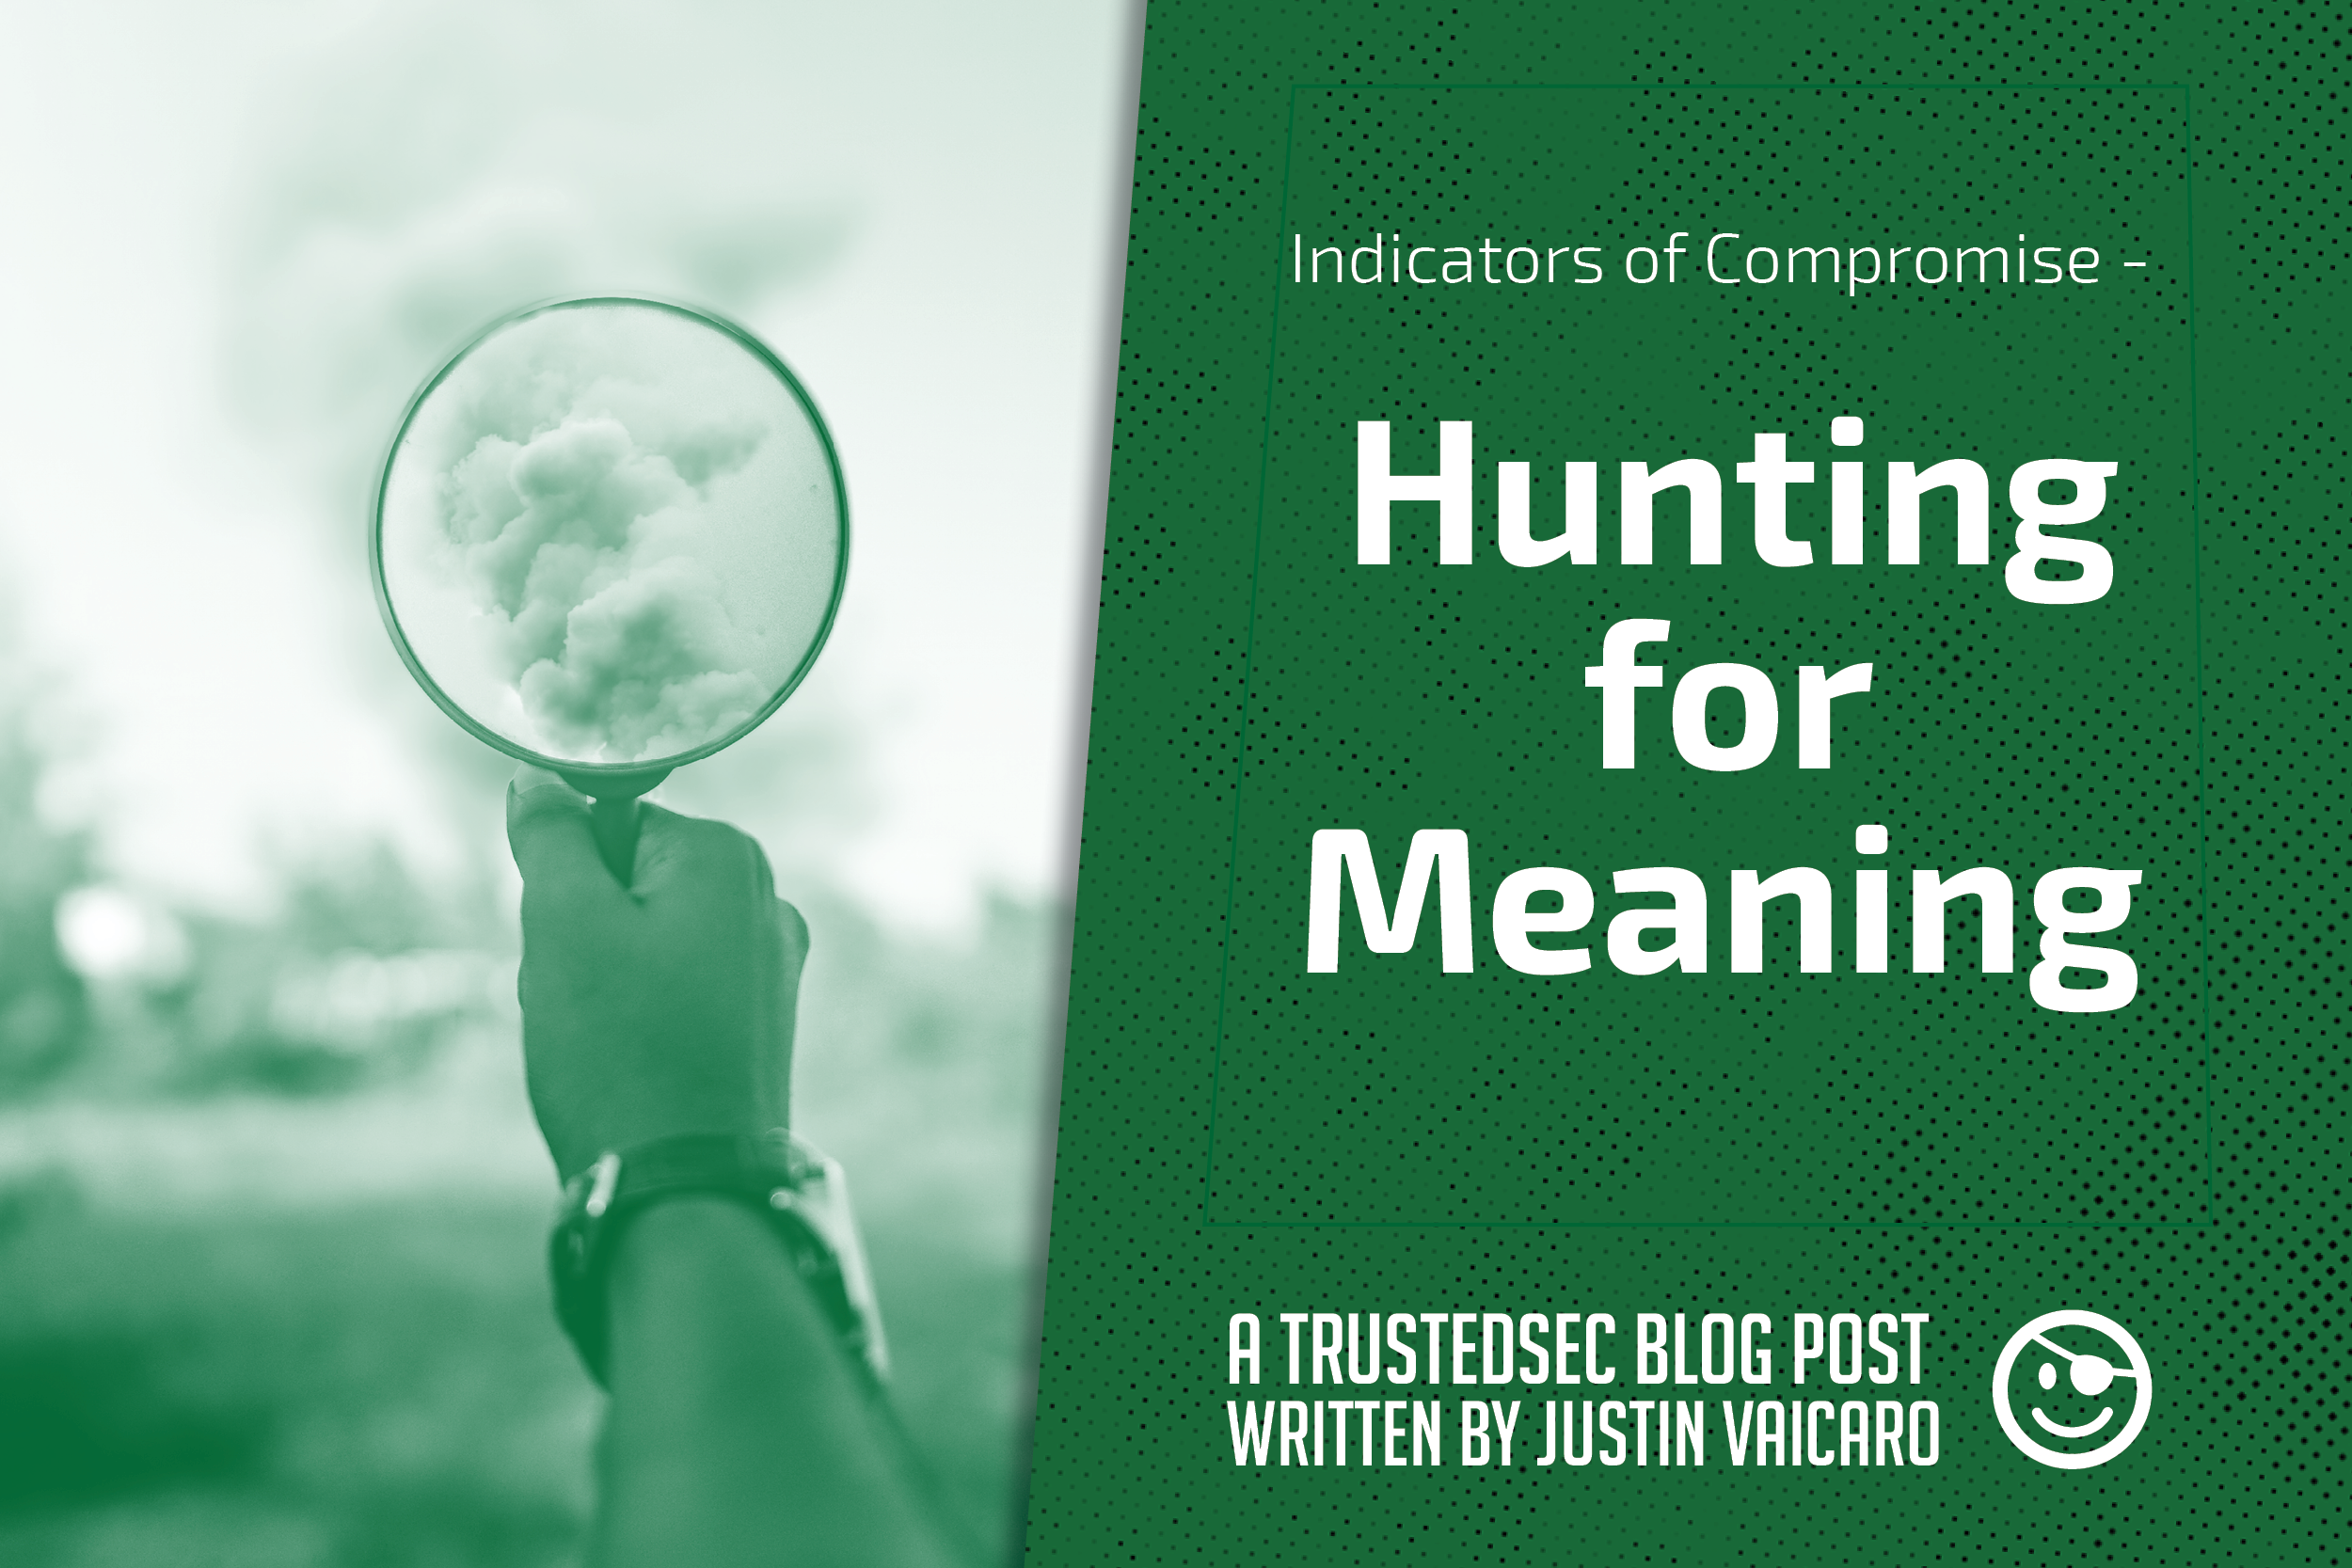 hunting for meaning blog post graphic